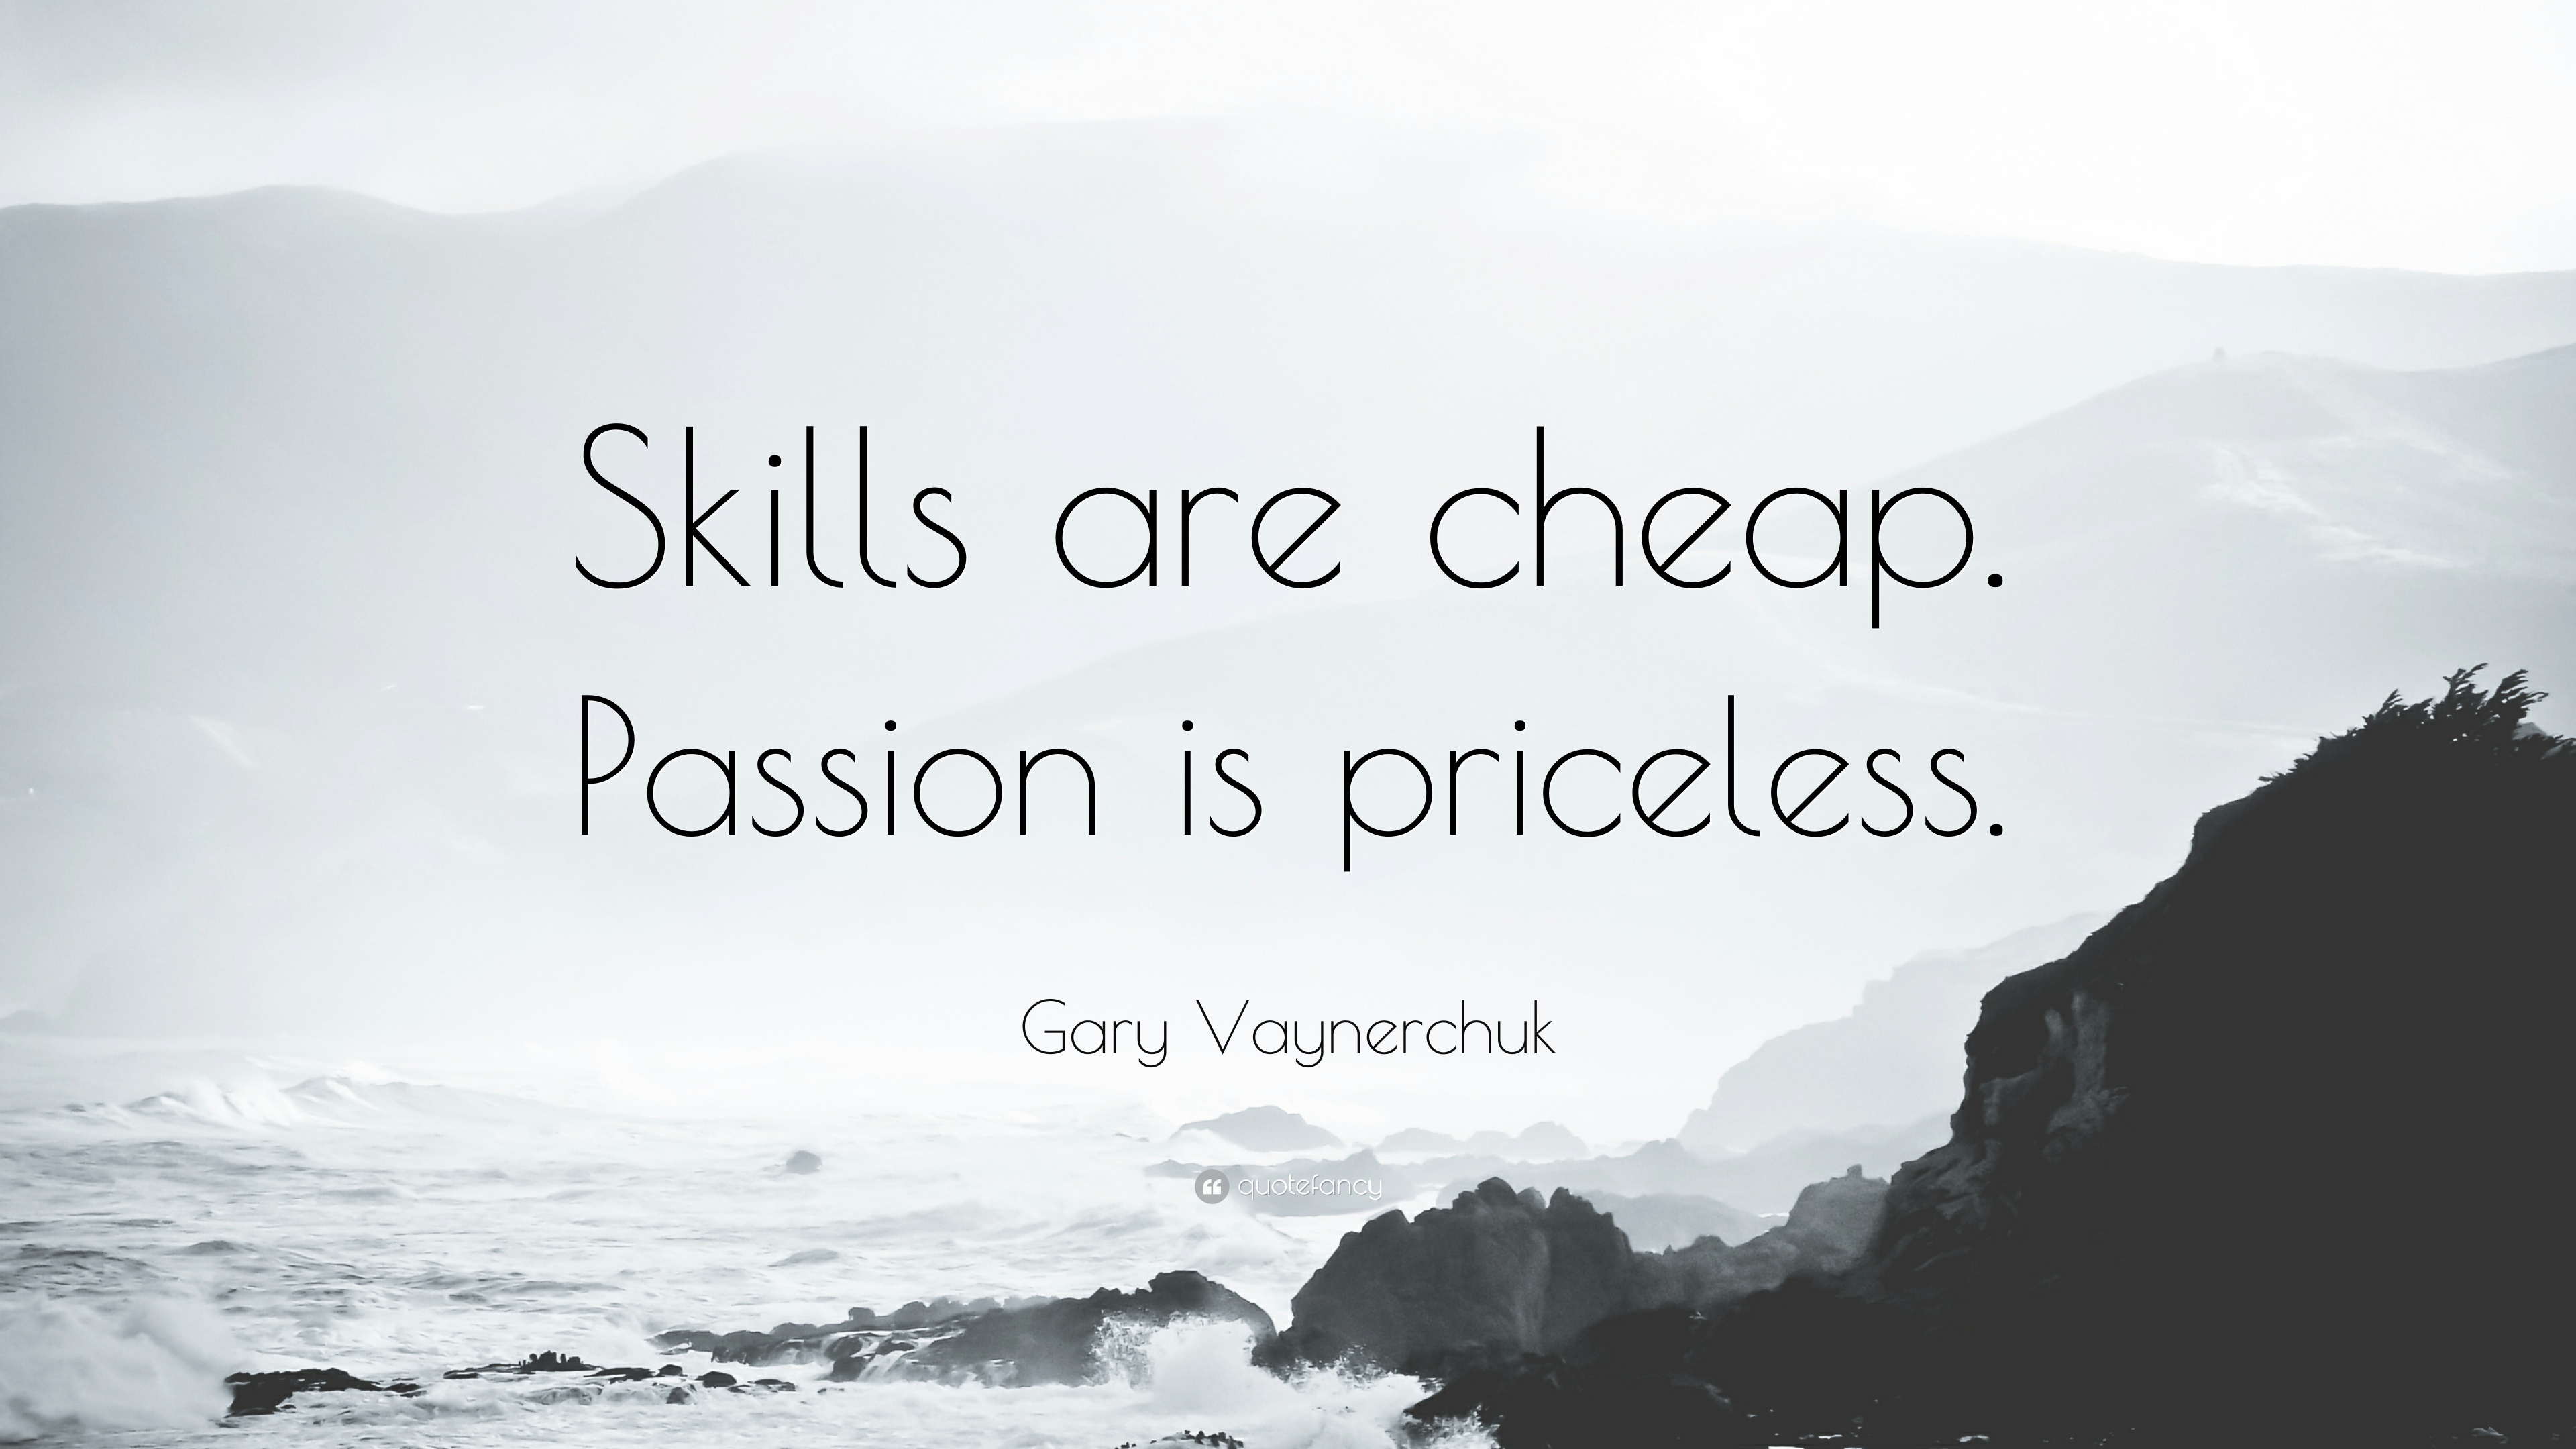 Passion Quotes Passion Quotes (40 wallpapers)   Quotefancy Passion Quotes